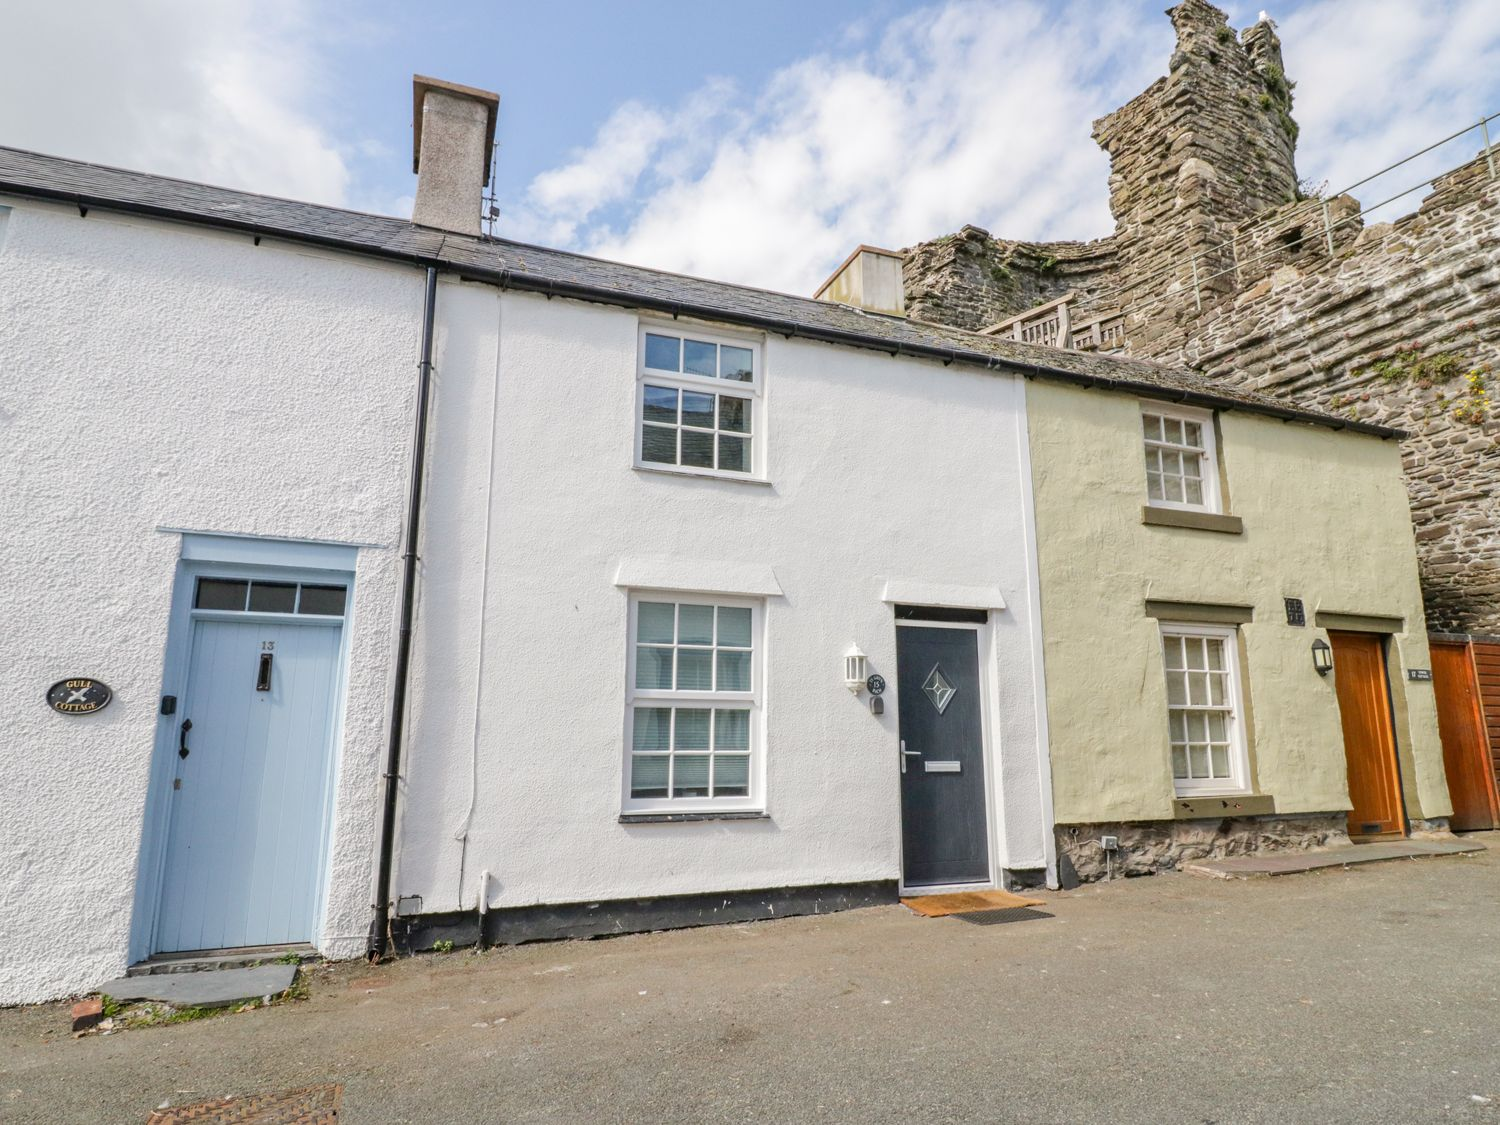 15 Sea View Terrace - North Wales - 1004522 - photo 1